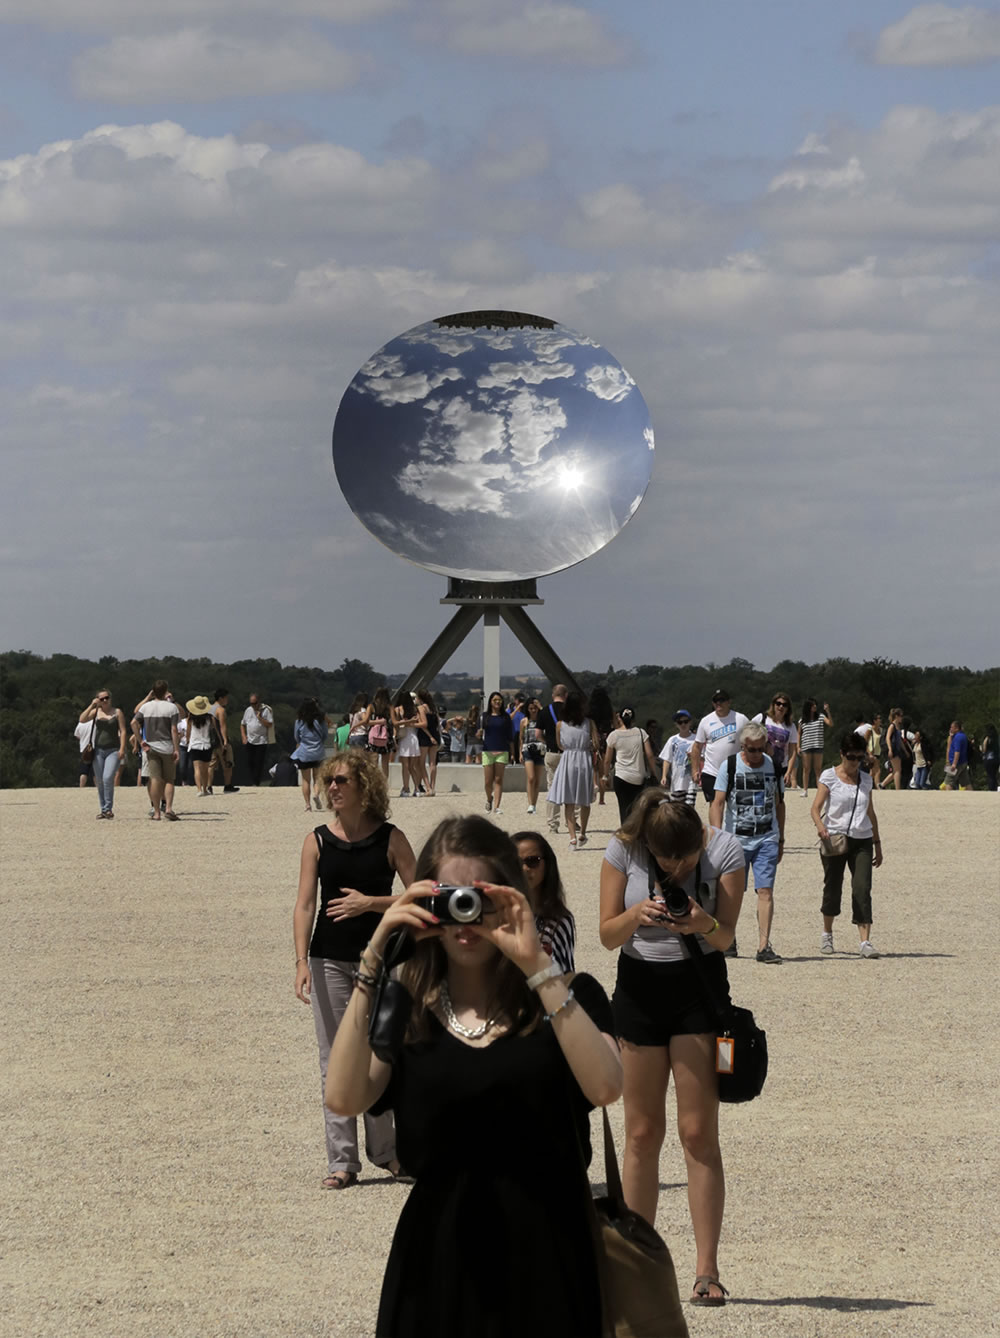 Anish Kapoor is this year's invited contemporary artist at Versailles.  His installations will be on display until November 1st.  Here his Sky Mirror stands on the plateau between the chateau and the gardens.